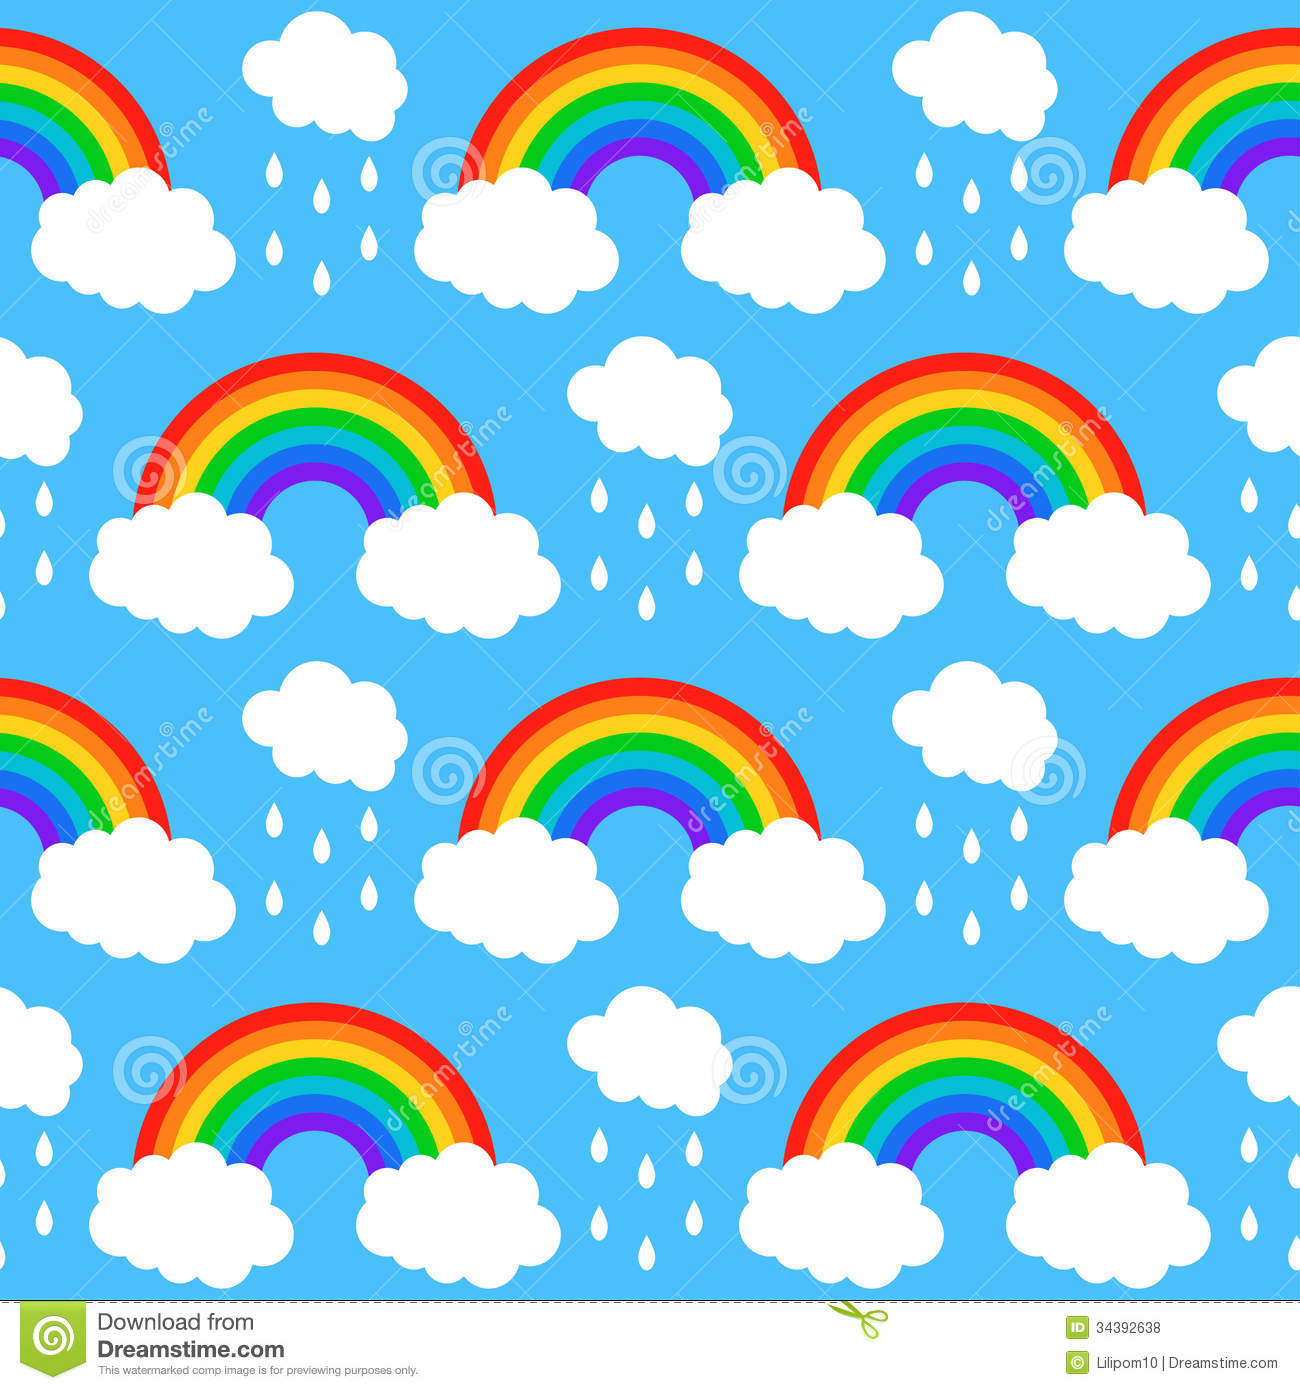 blue cloud with rainbow wallpaper - photo #37